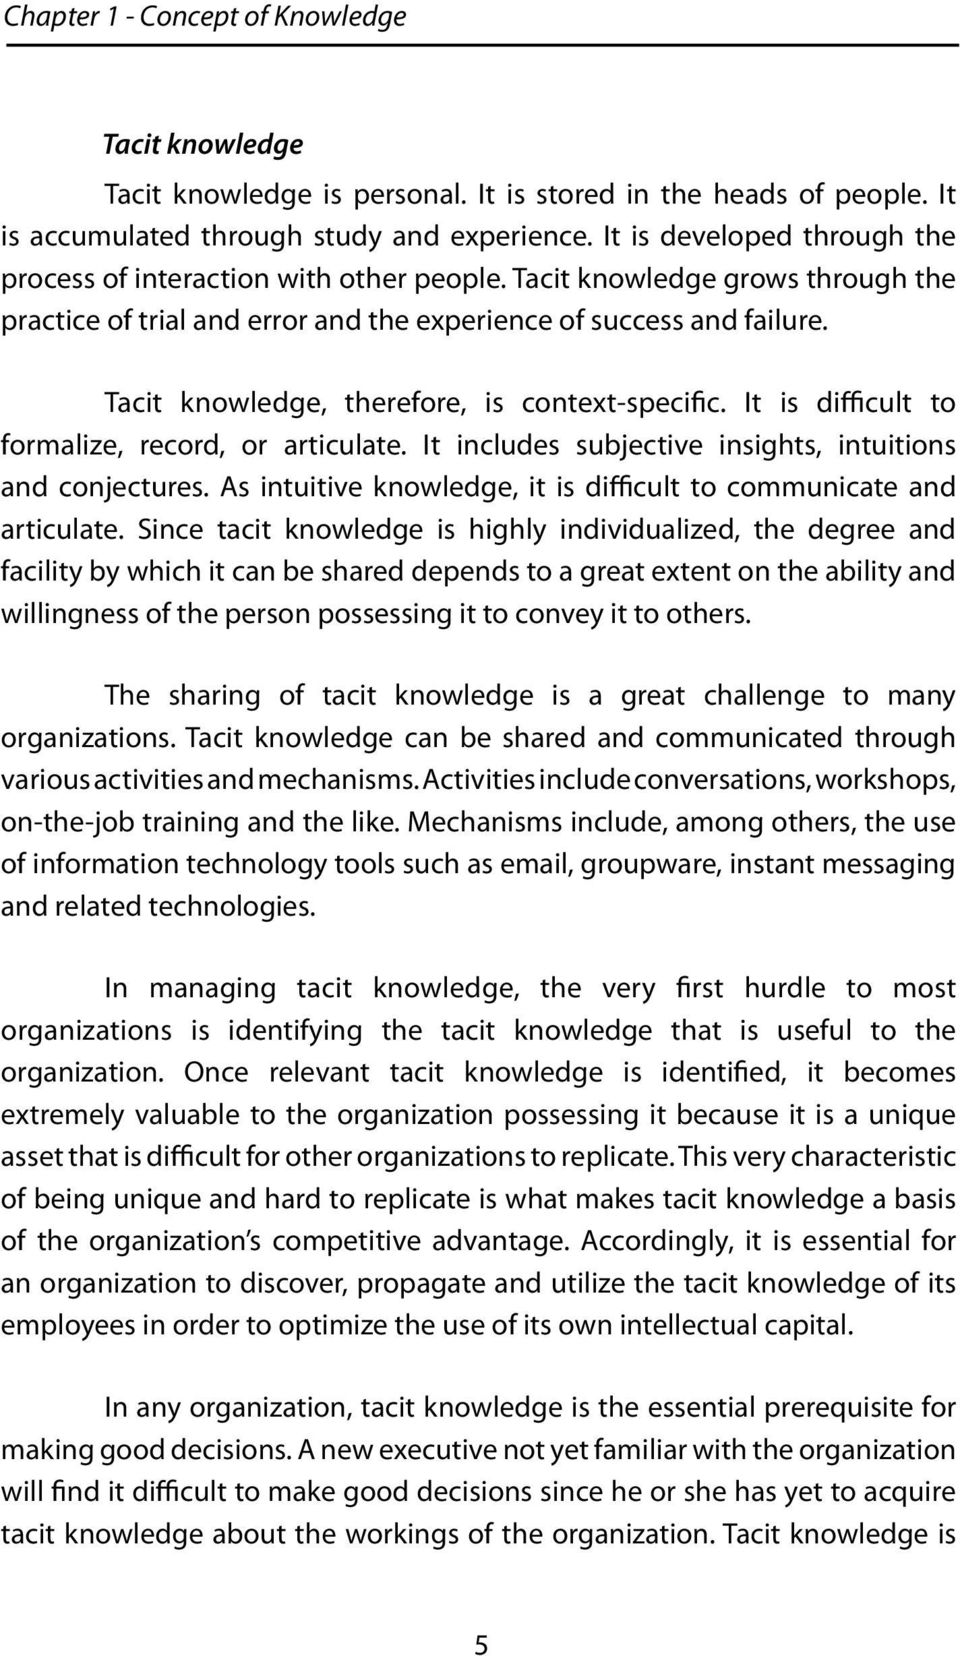 Tacit knowledge, therefore, is context-specific. It is difficult to formalize, record, or articulate. It includes subjective insights, intuitions and conjectures.